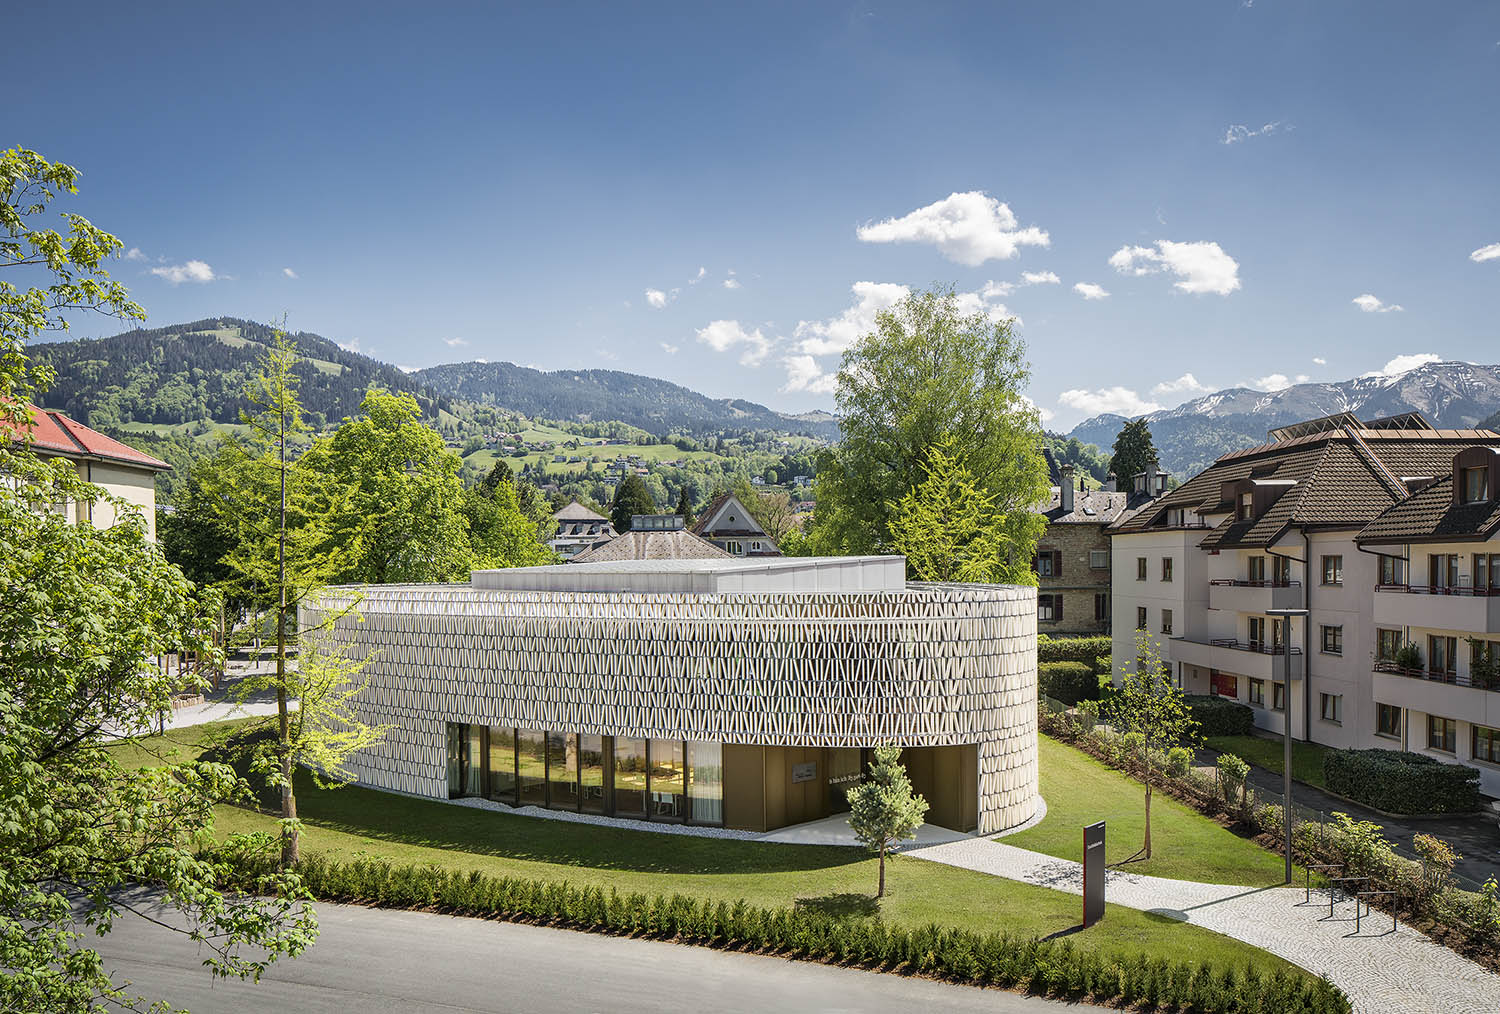 The library stands out expressively among the rectangular shapes of the surrounding buildings. Albrecht I. Schnabel